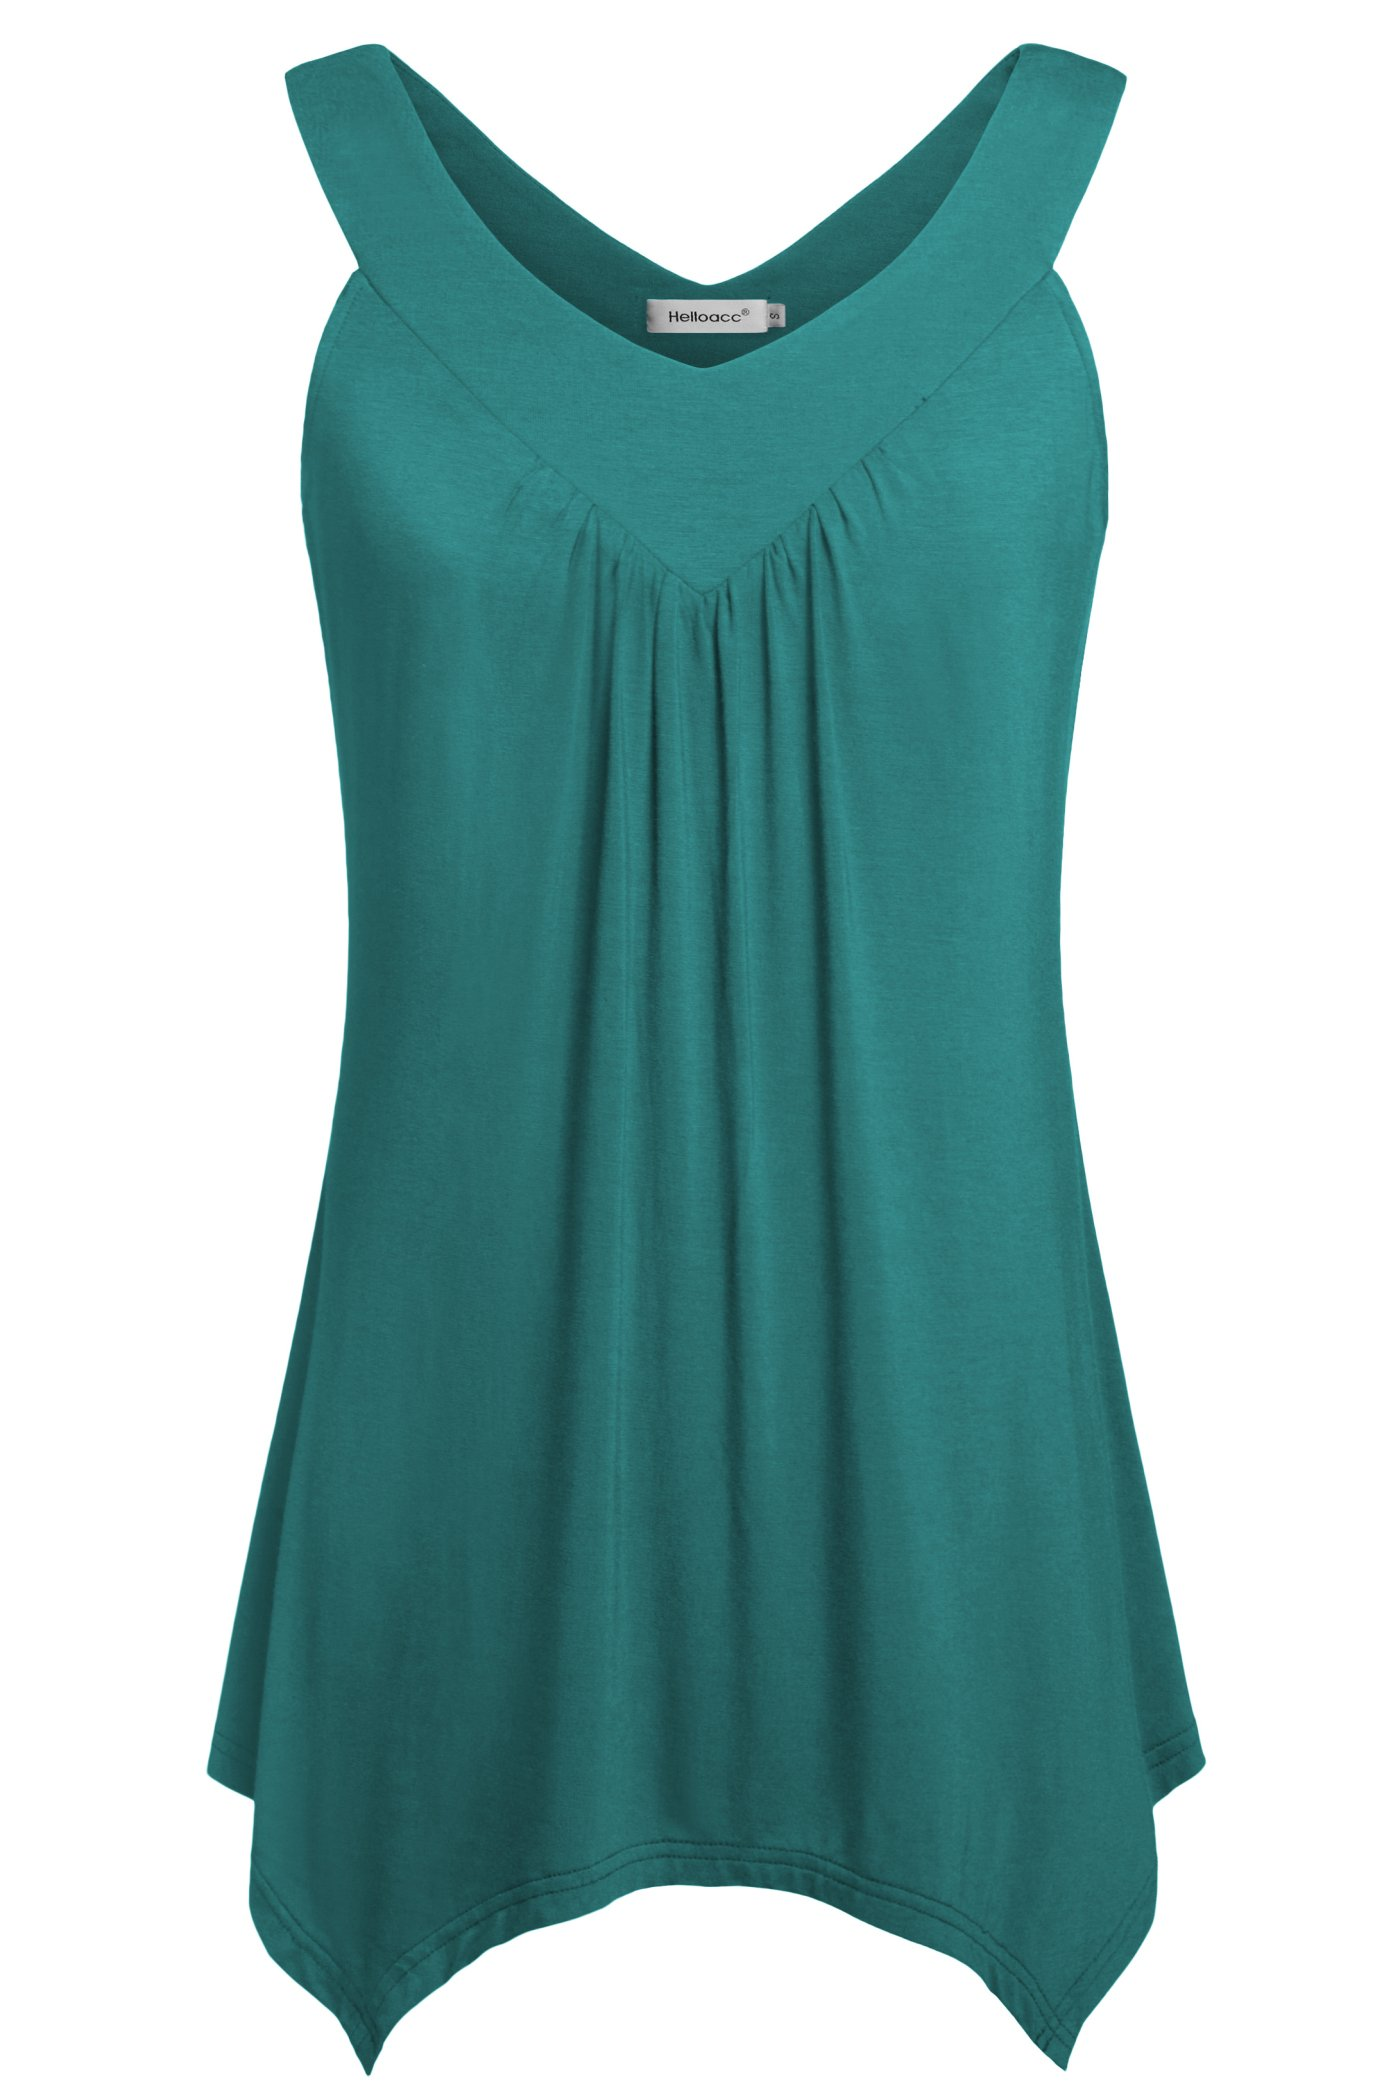 Helloacc Tanks & Tops,Women V Neck Comfy Sleeveless Summer Blouses for Vacation Aqua Large by Helloacc